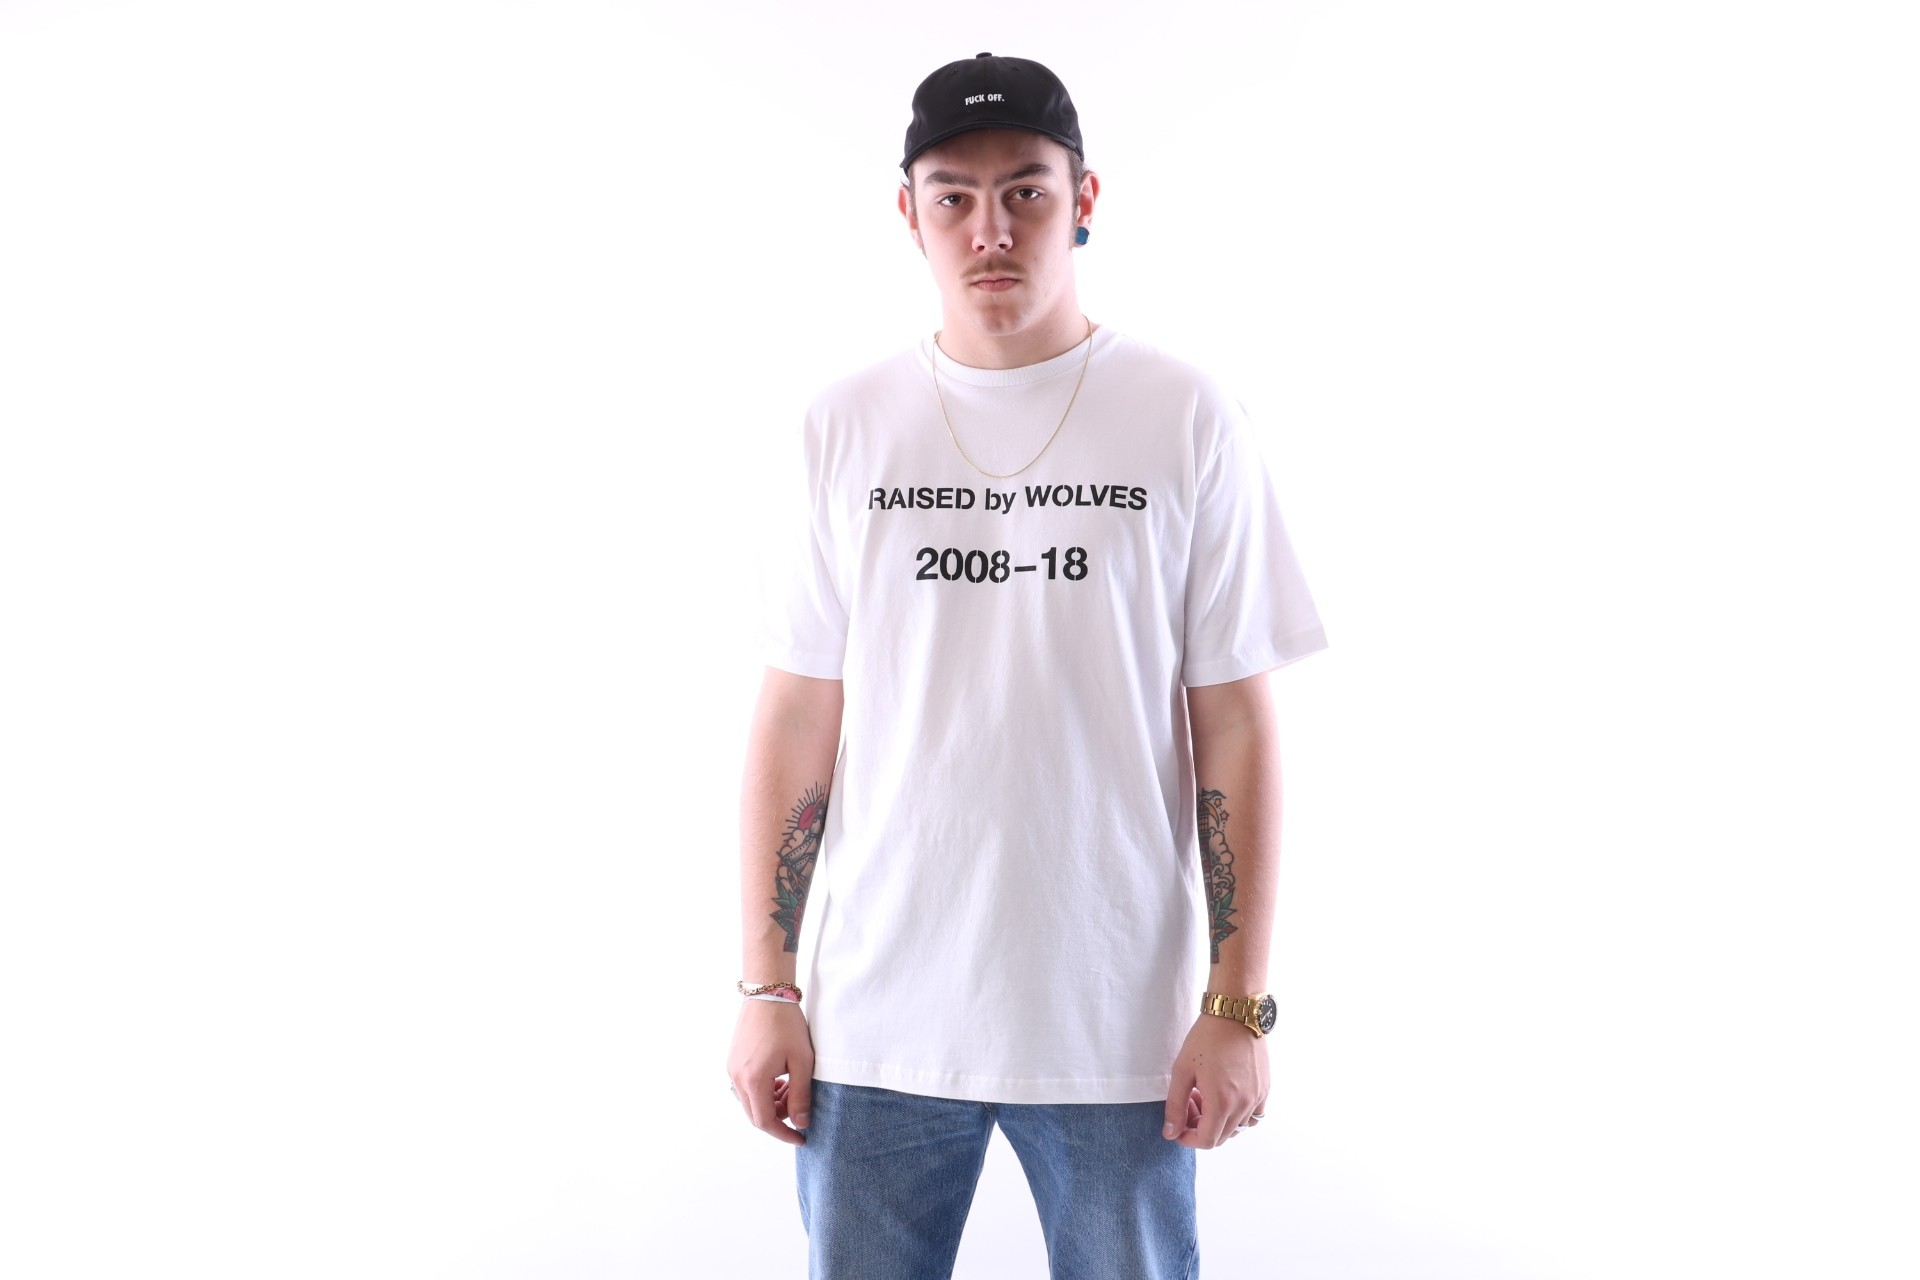 Foto van raised by wolves decade t-shirt White Jersey